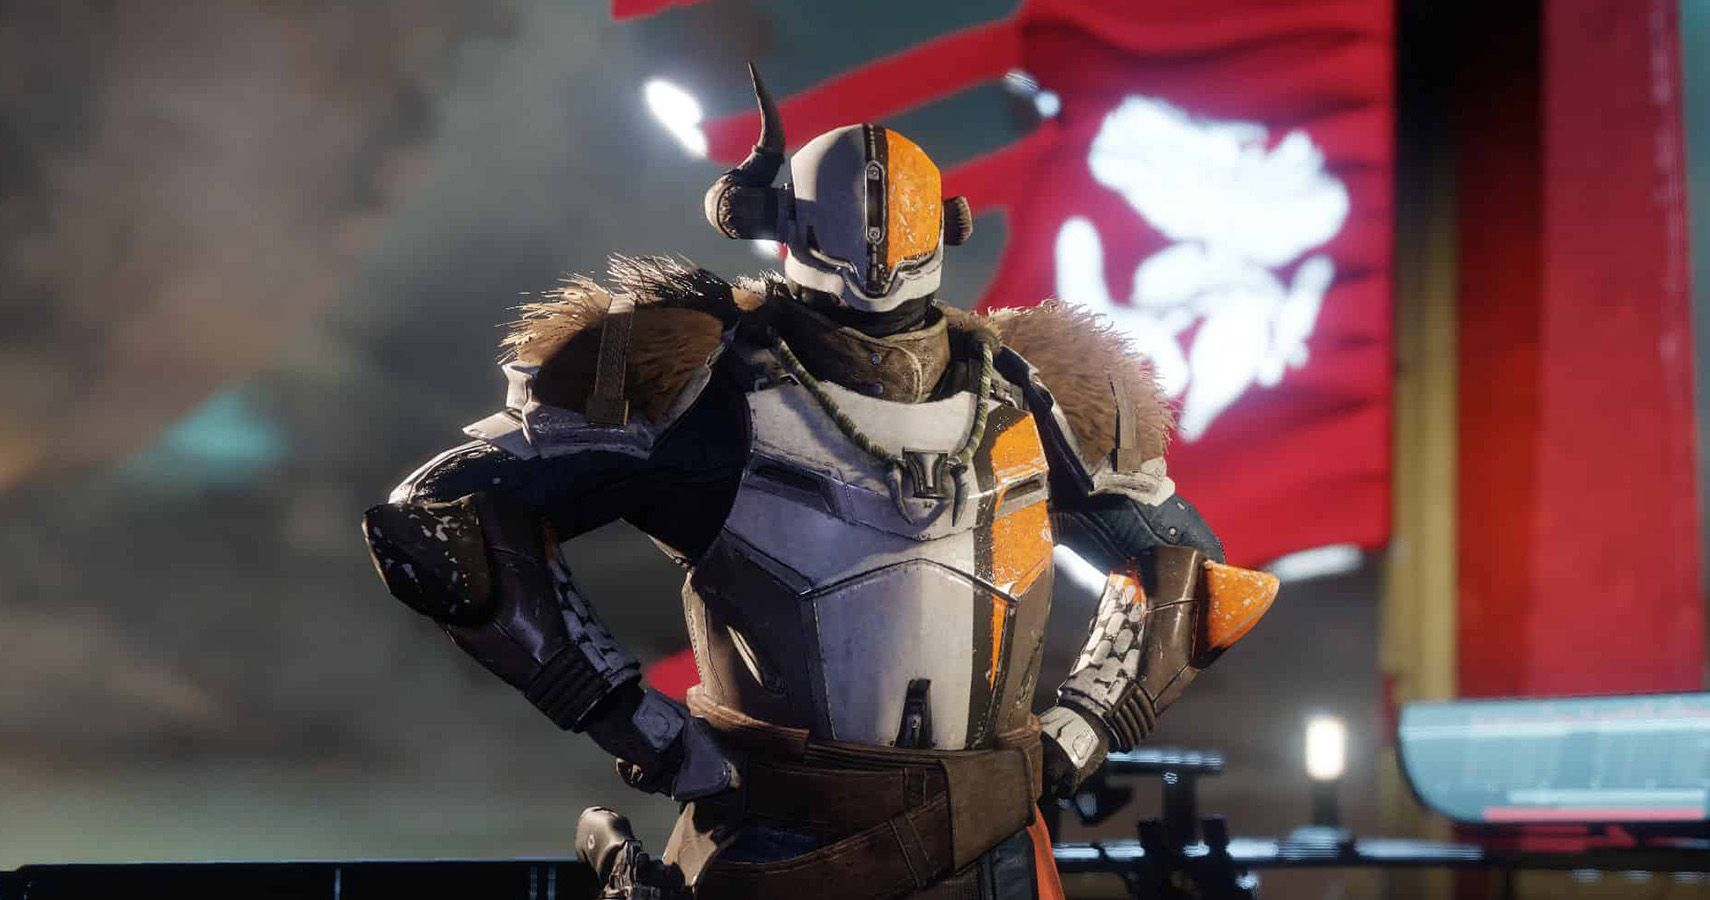 Destiny 2: Every Crucible Game Mode, Ranked